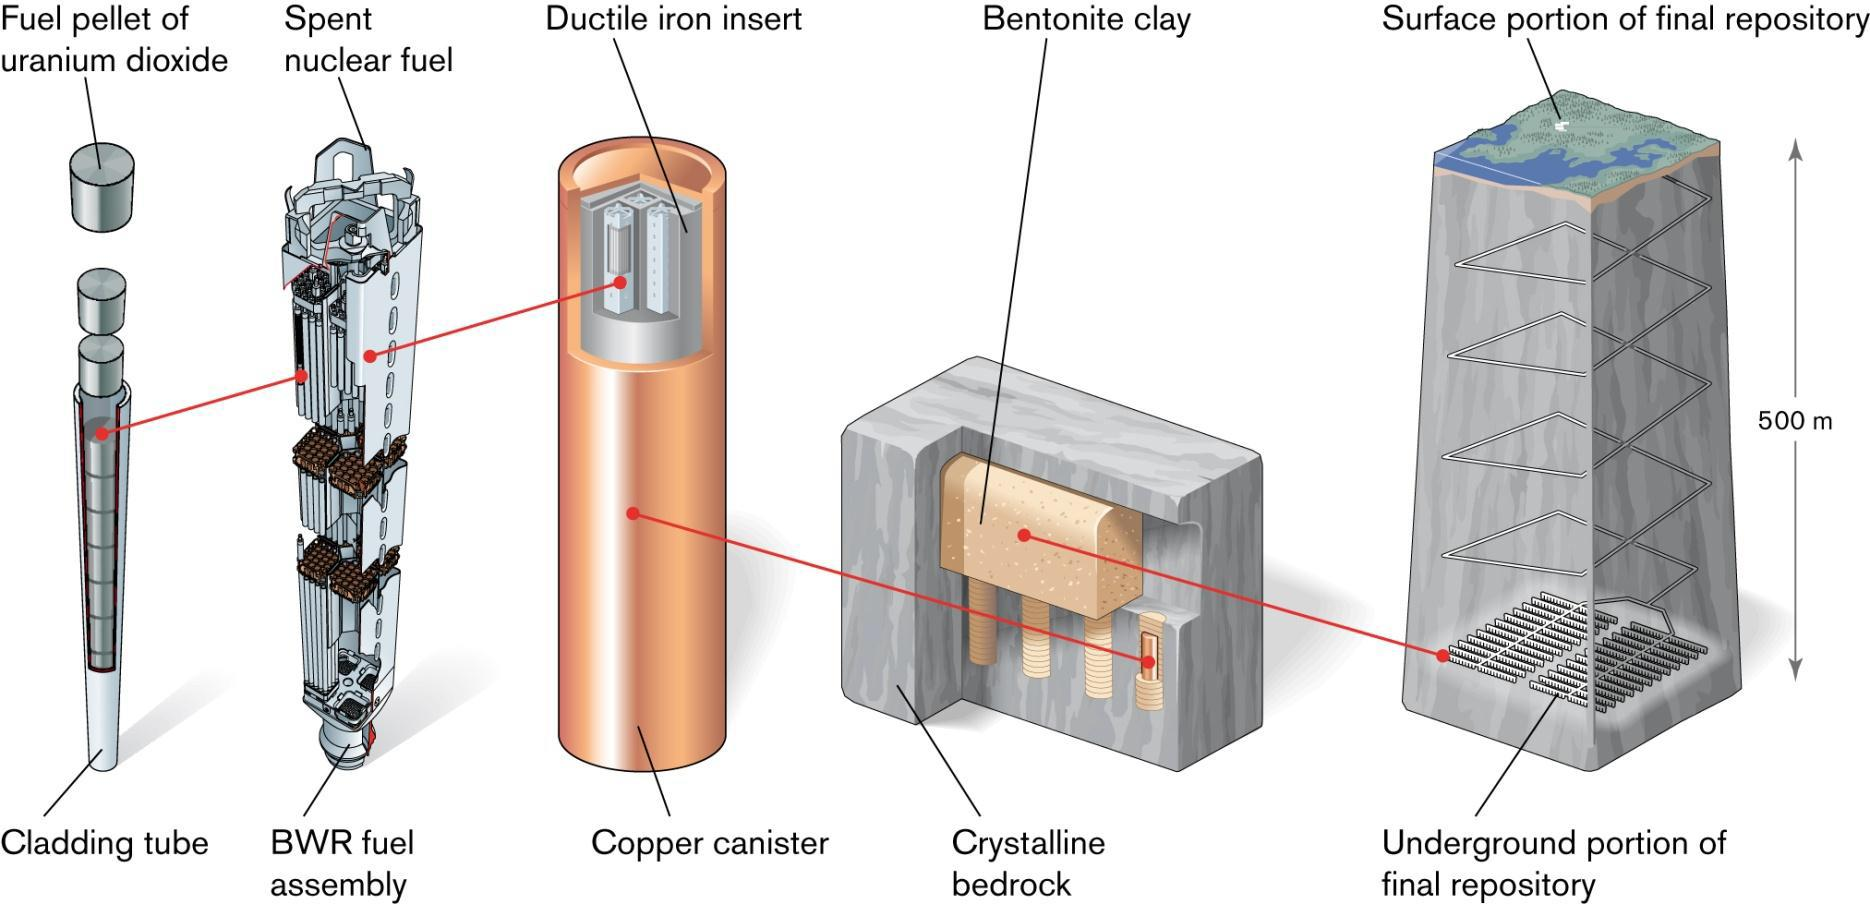 Disposal Concept for Spent Nuclear Fuel